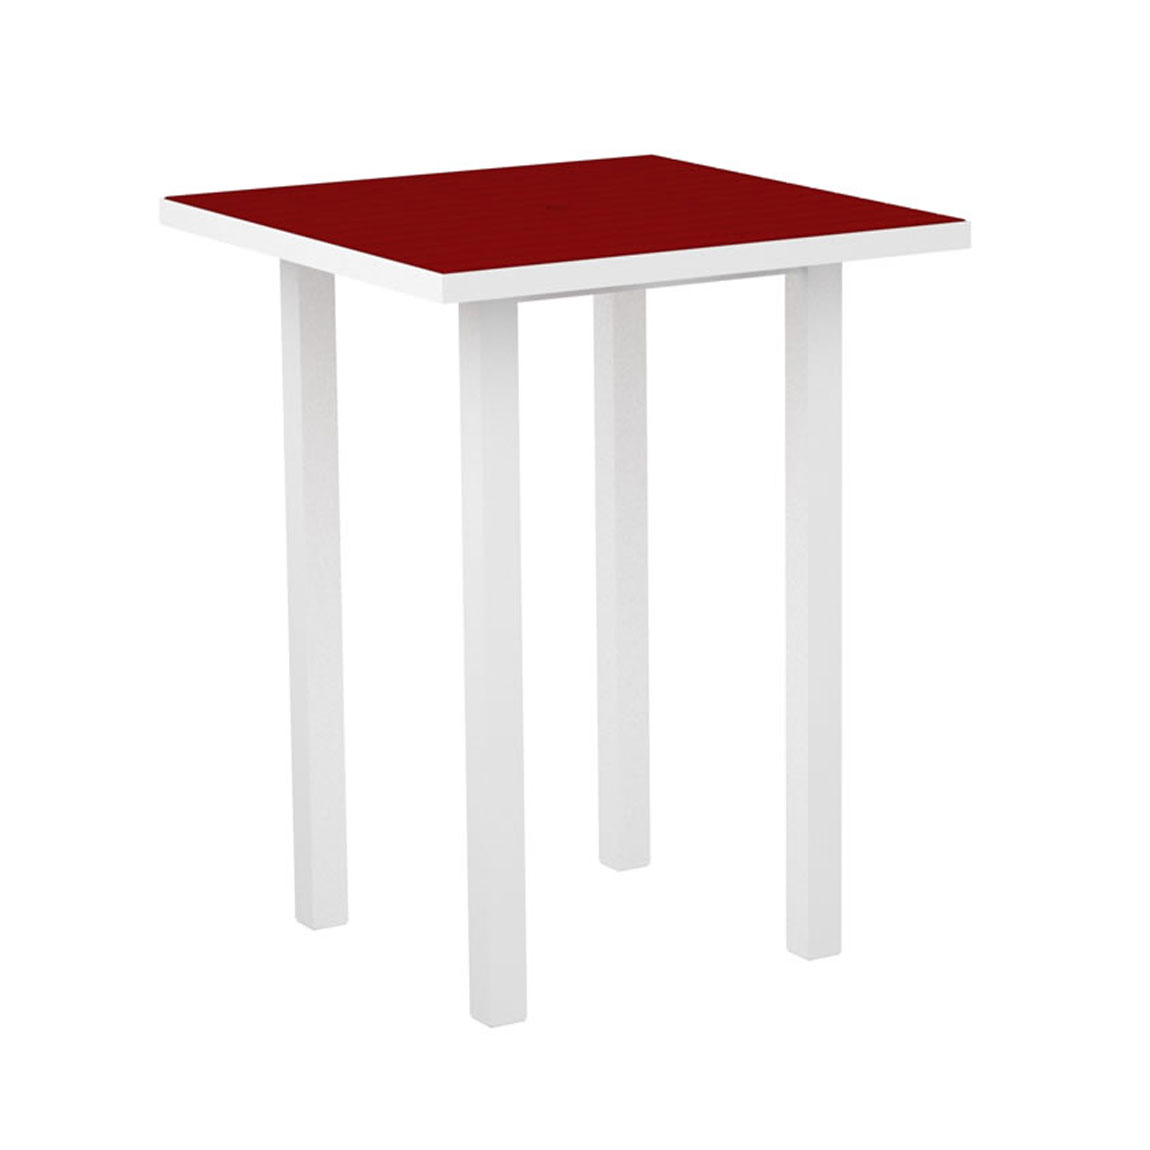 "Euro Recyled Plastic 36"" Square Pub Table by Poly-Wood Adirondack"